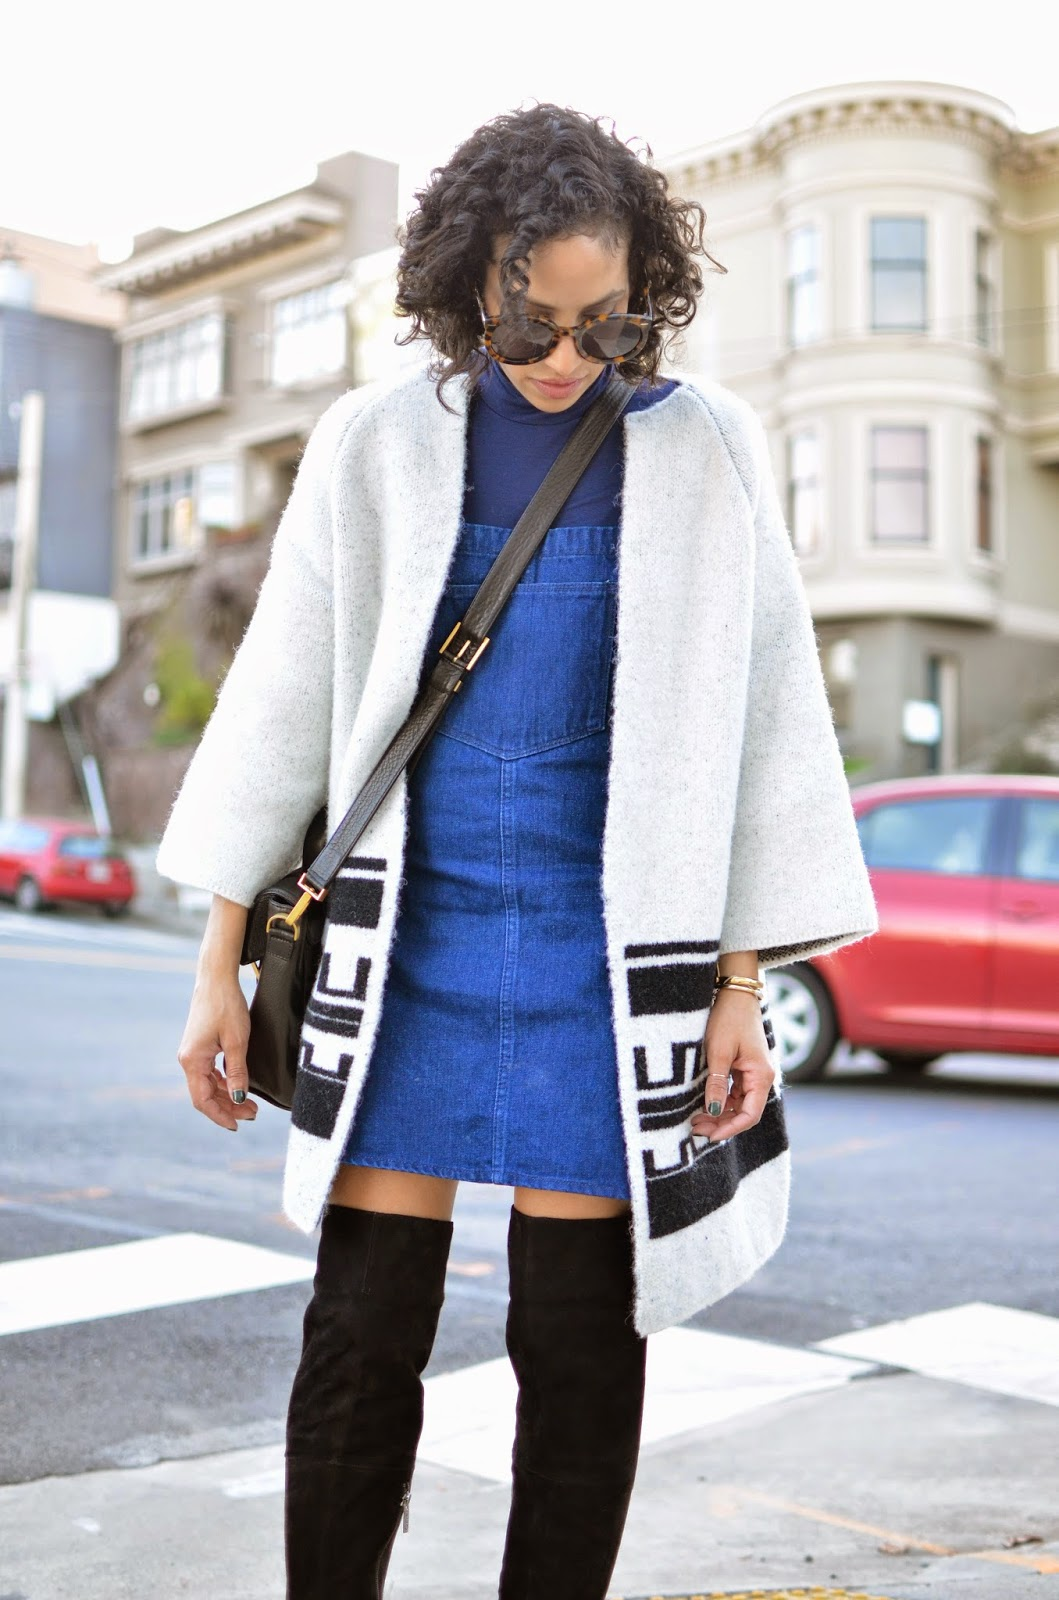 outfit post, SF street style, DUO boots, OTK boots, Zara sale find, curly hair, skirt overalls, how to style turtlenecks, Karen Walker Super Sunglasses, Fabros bag